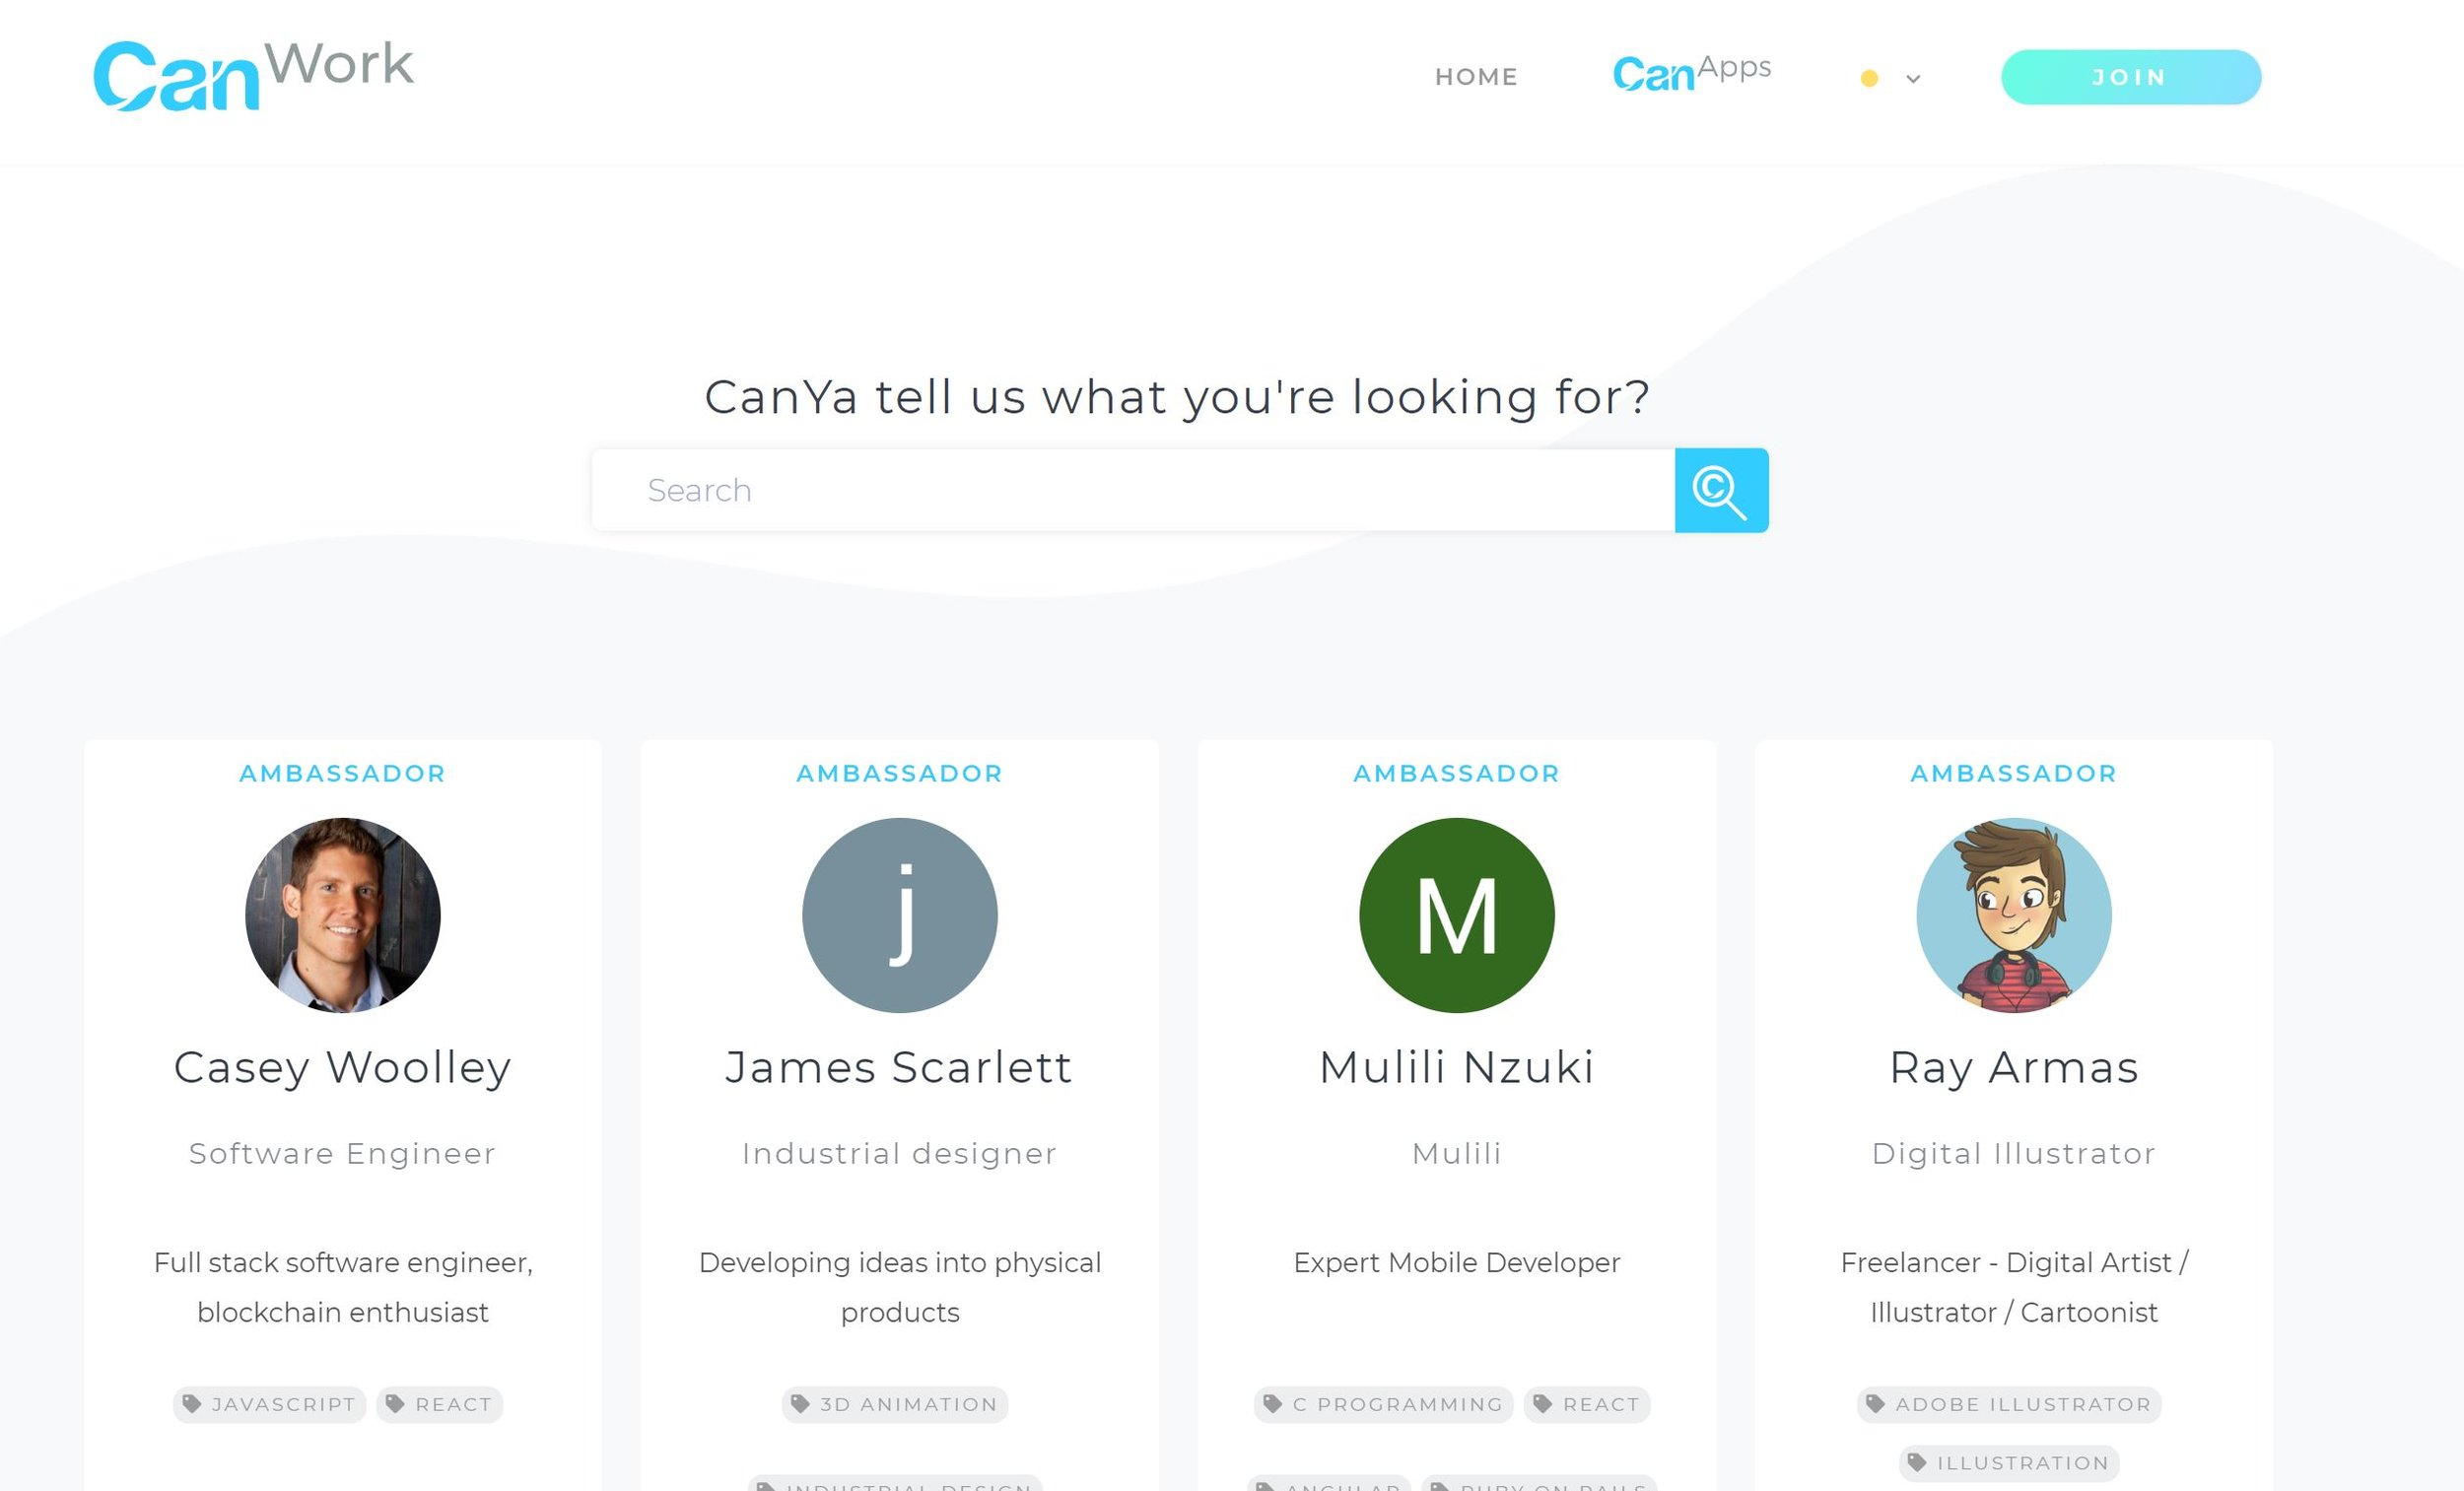 Project: Canwork - App #1 to launch in the CanYa ecosystemA decentralised marketplace for freelance professionals to exchange services. Backed by blockchain technology (smart contracts and hedged escrow), CanWork protects contract payments and facilitates a global freelance economy with only 1% fees.Artefacts coming soon